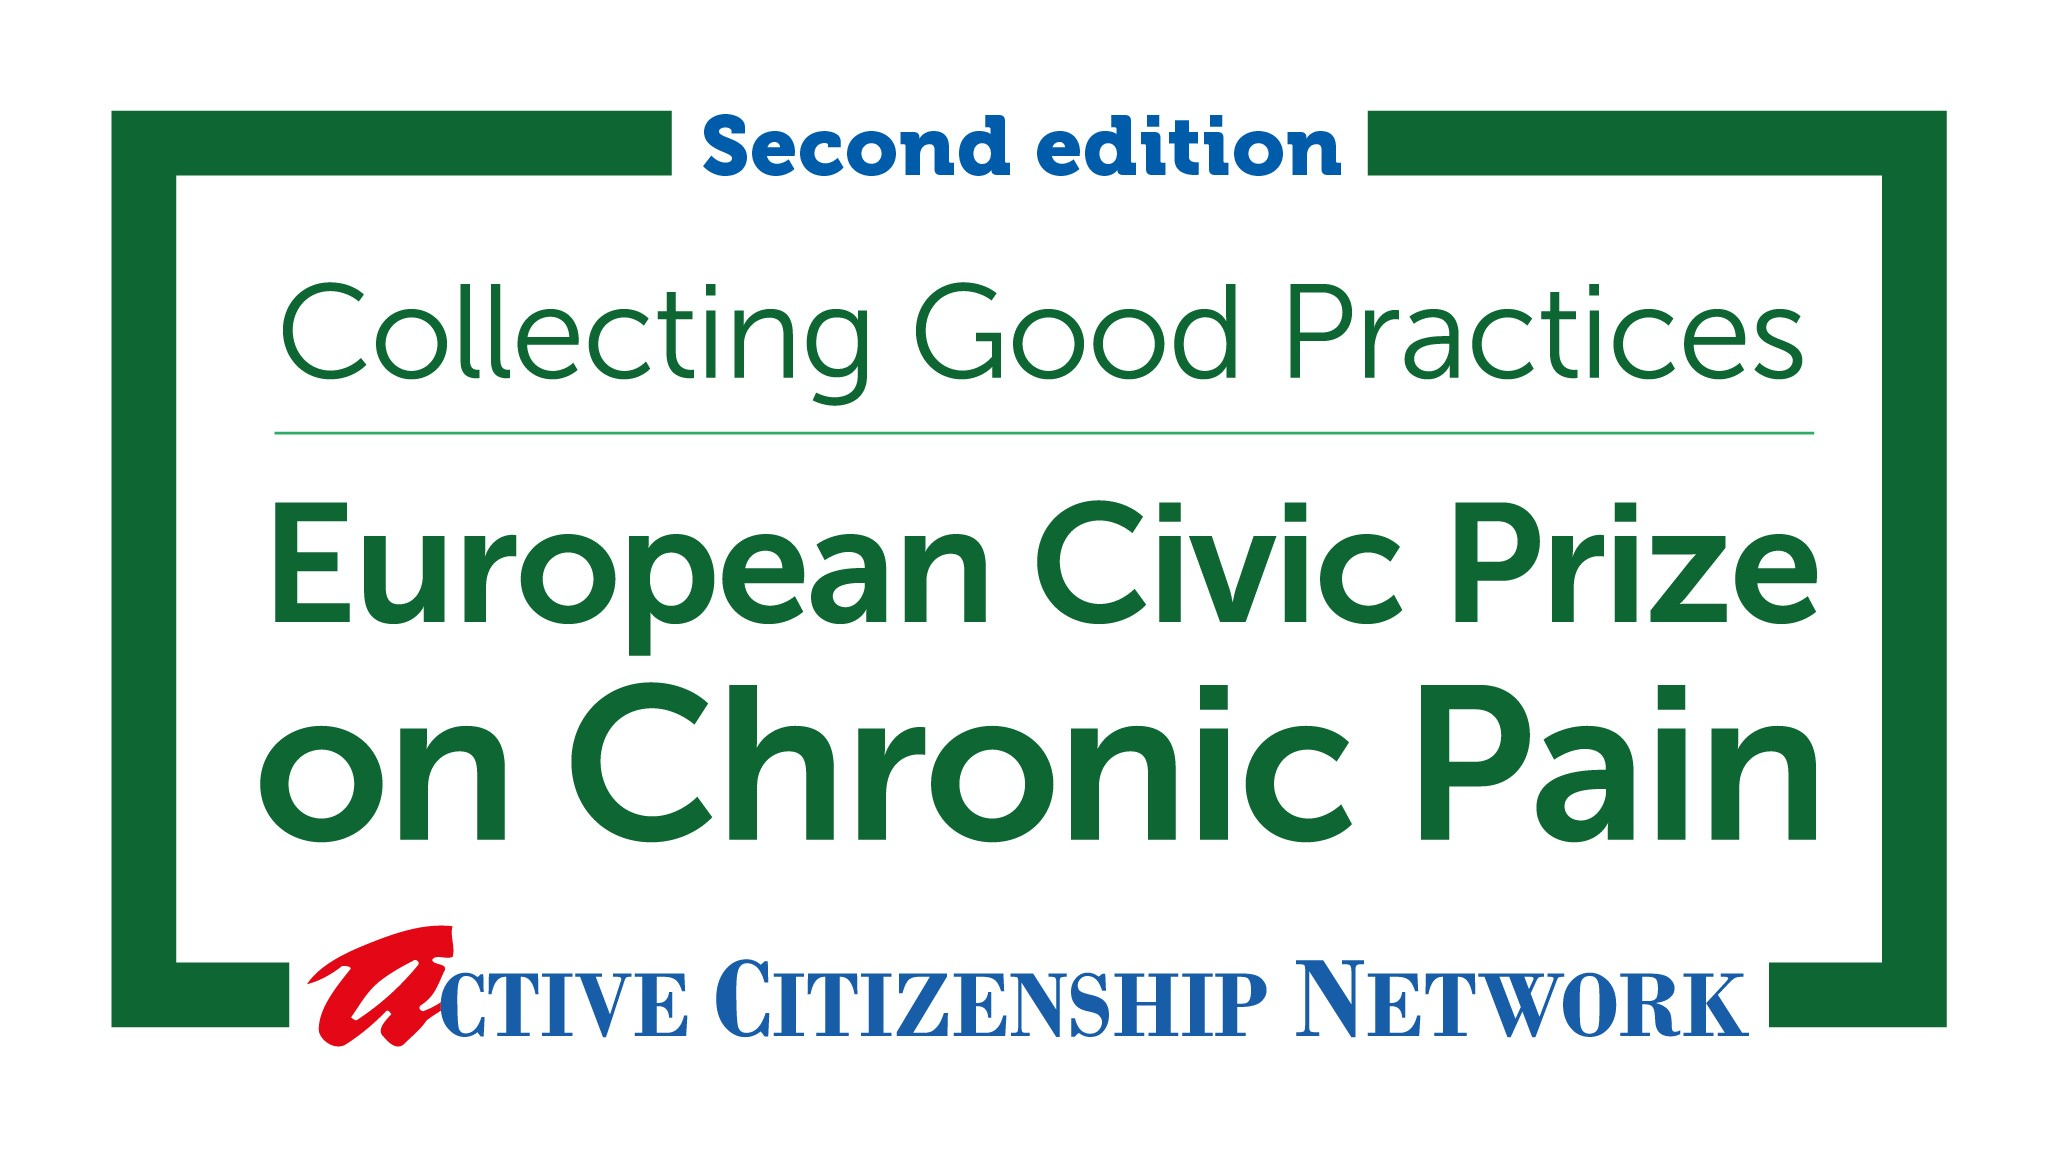 http://www.activecitizenship.net/images/patientsrights/bp-2016/Logo_eucivicprize-second-edition.jpg